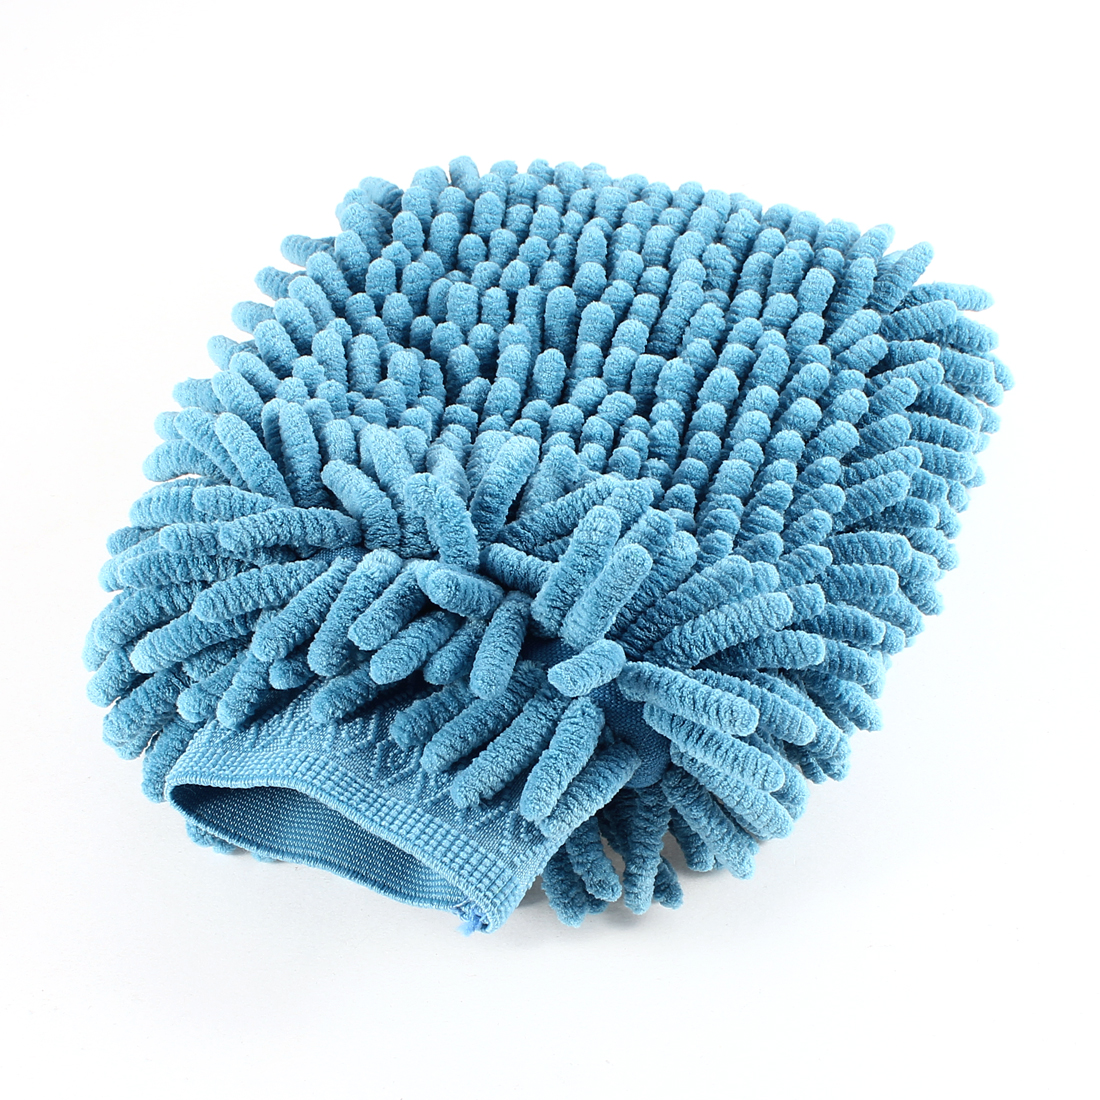 Elastic Cuff Double Sided Car Cleaning Mitt Glove Light Blue